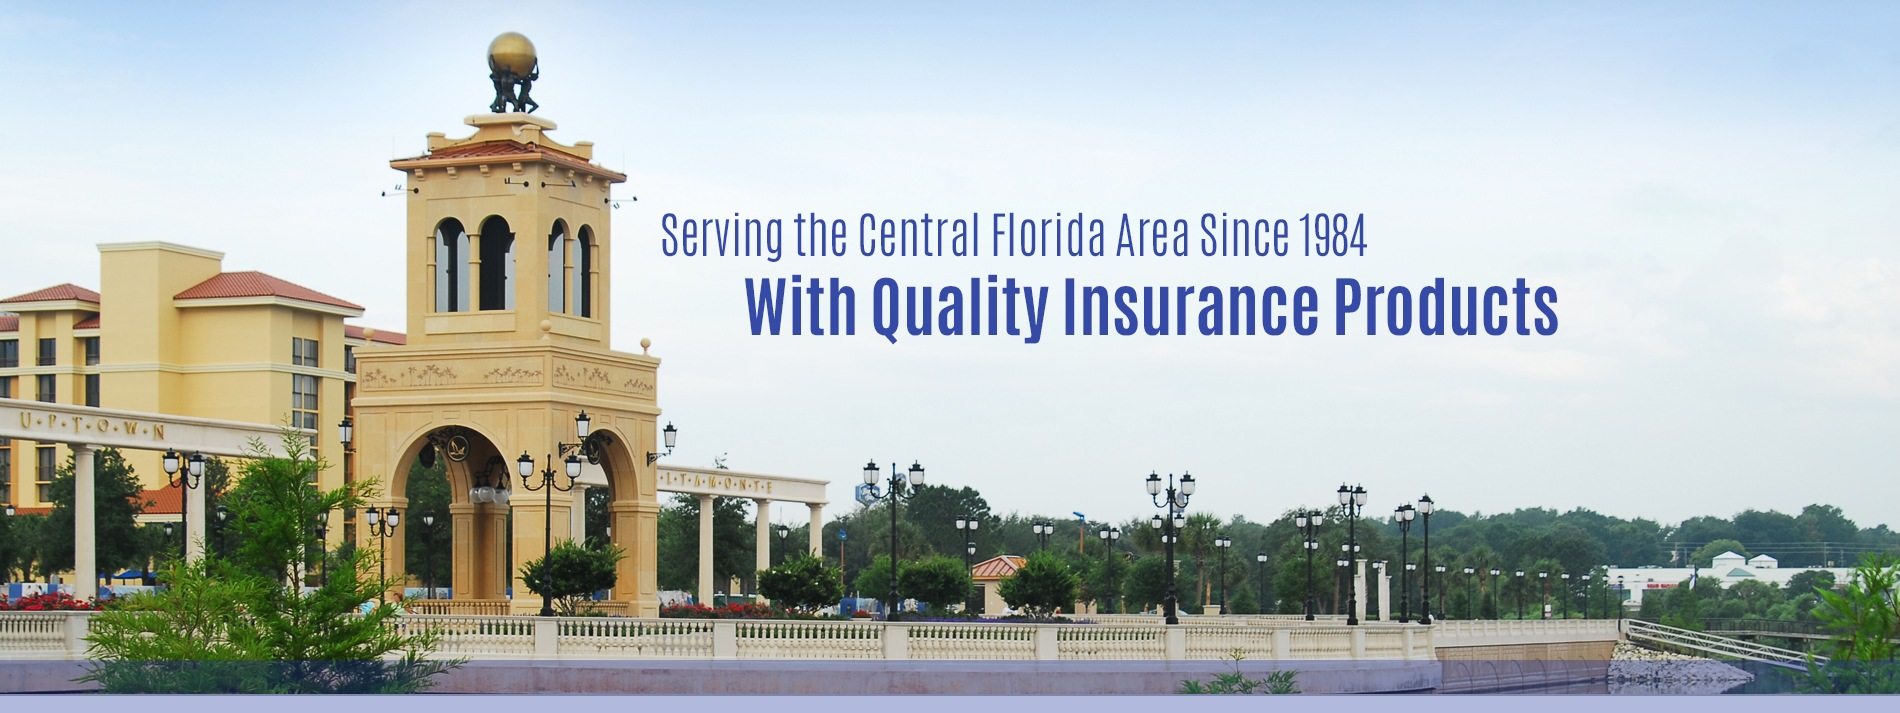 Serving the Central Florida Area since 1984 with quality insurance products.